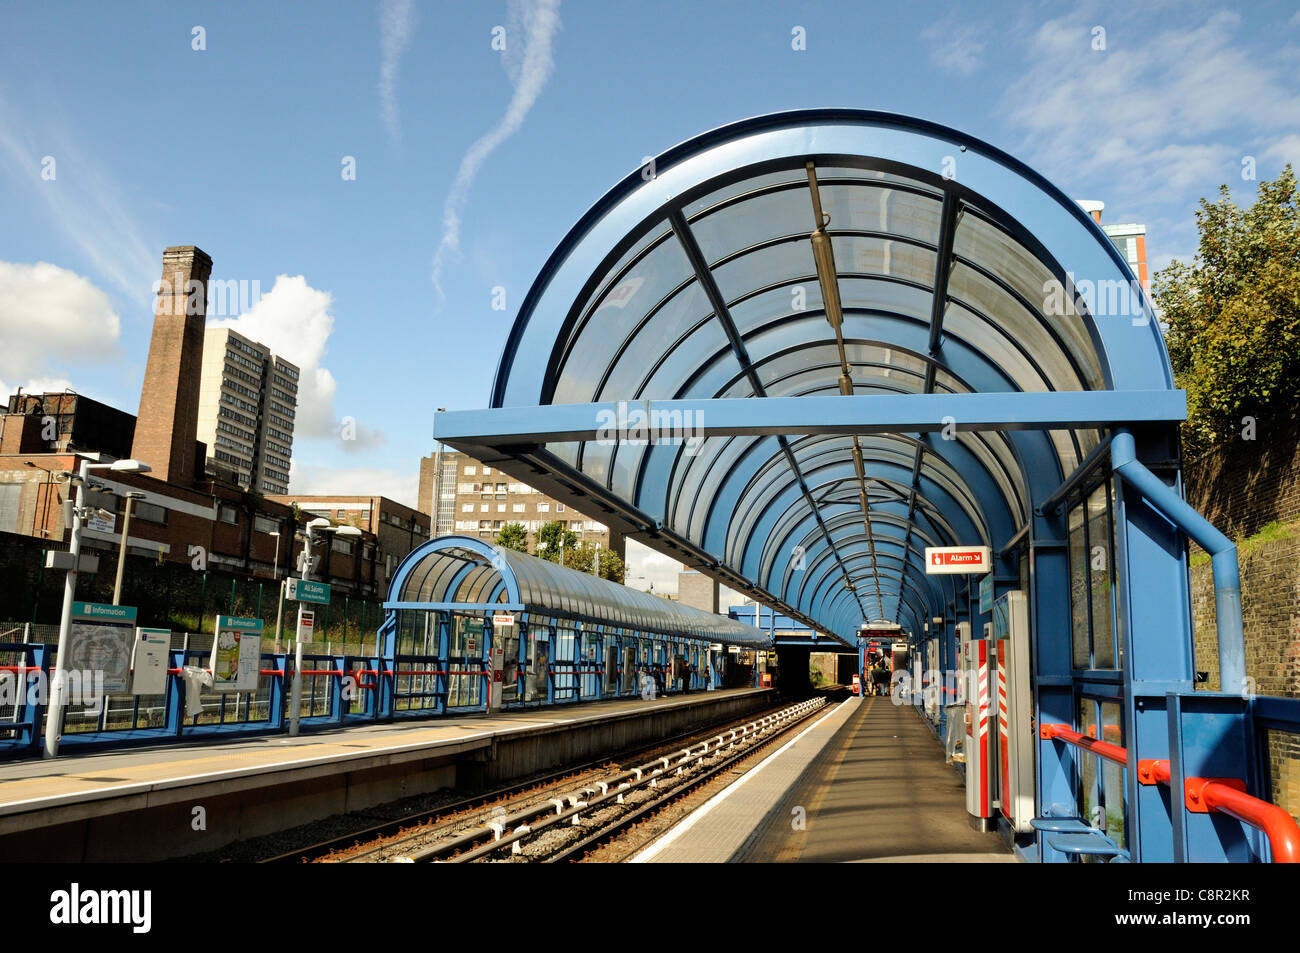 Platform with canopy All Saints Docklands Light Railway DLR Station Poplar Tower Hamlets East London England UK - Stock Image